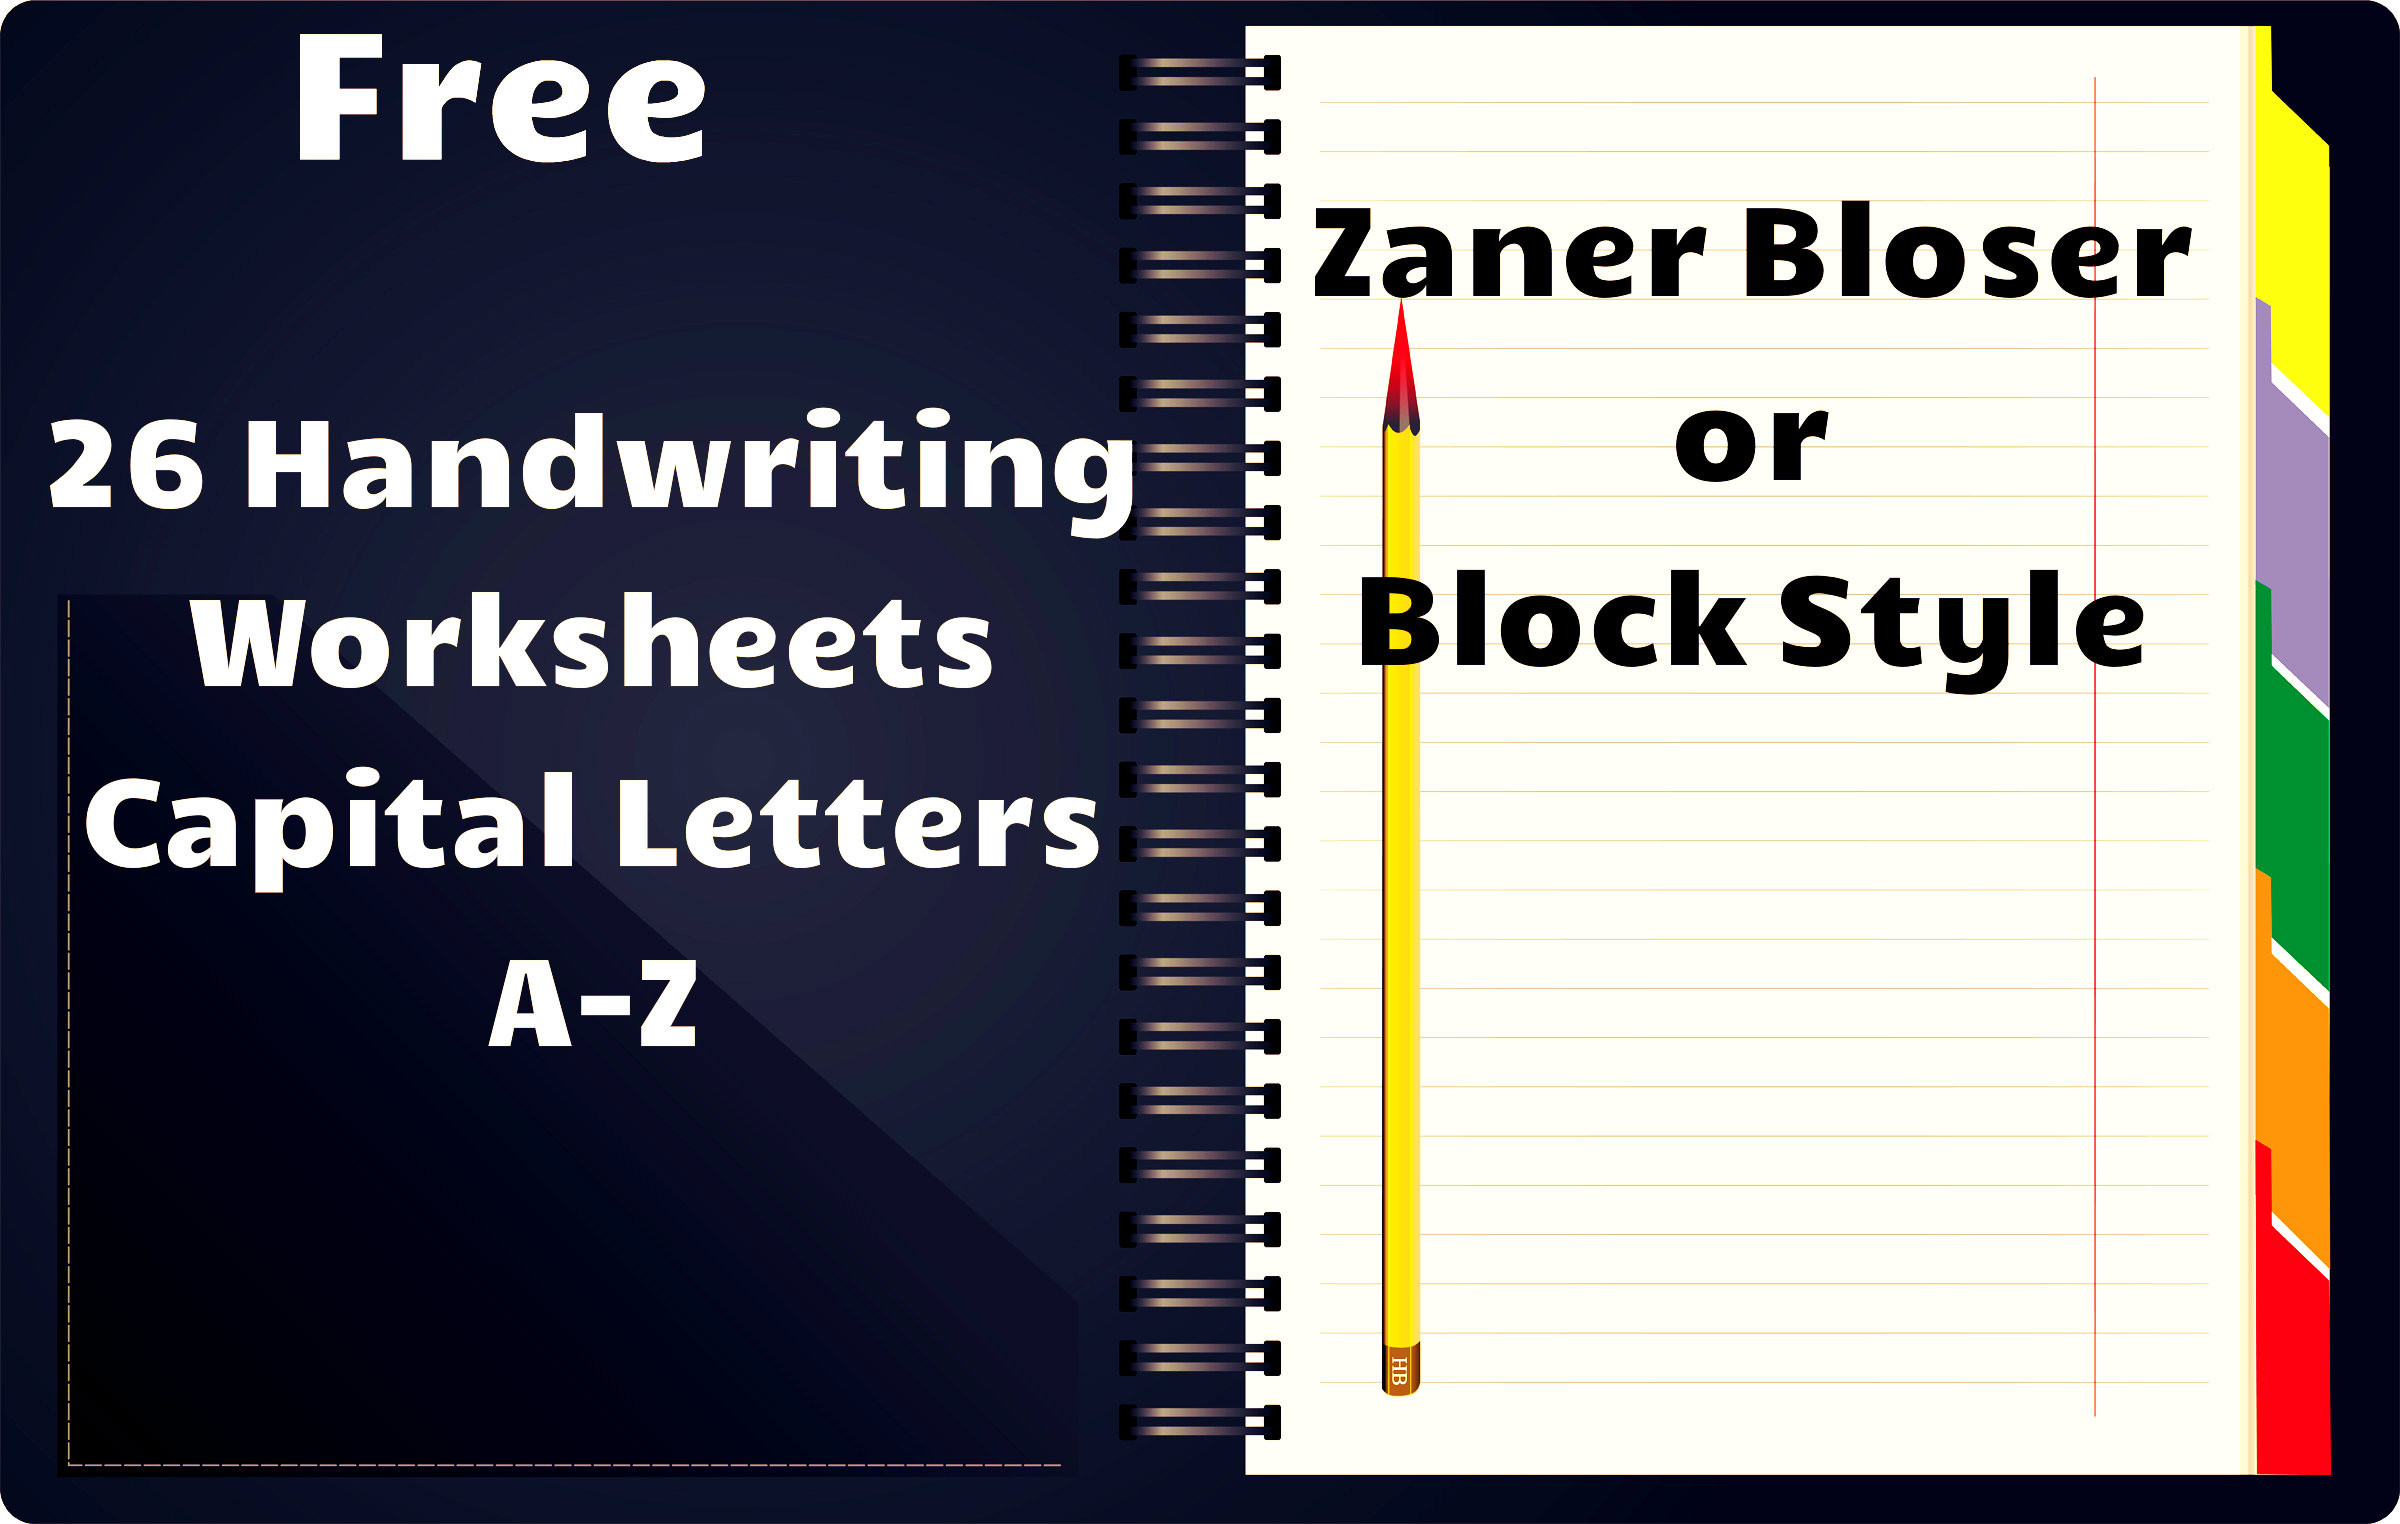 Zaner Bloser Handwriting Worksheets Free Handwriting Worksheets A Z